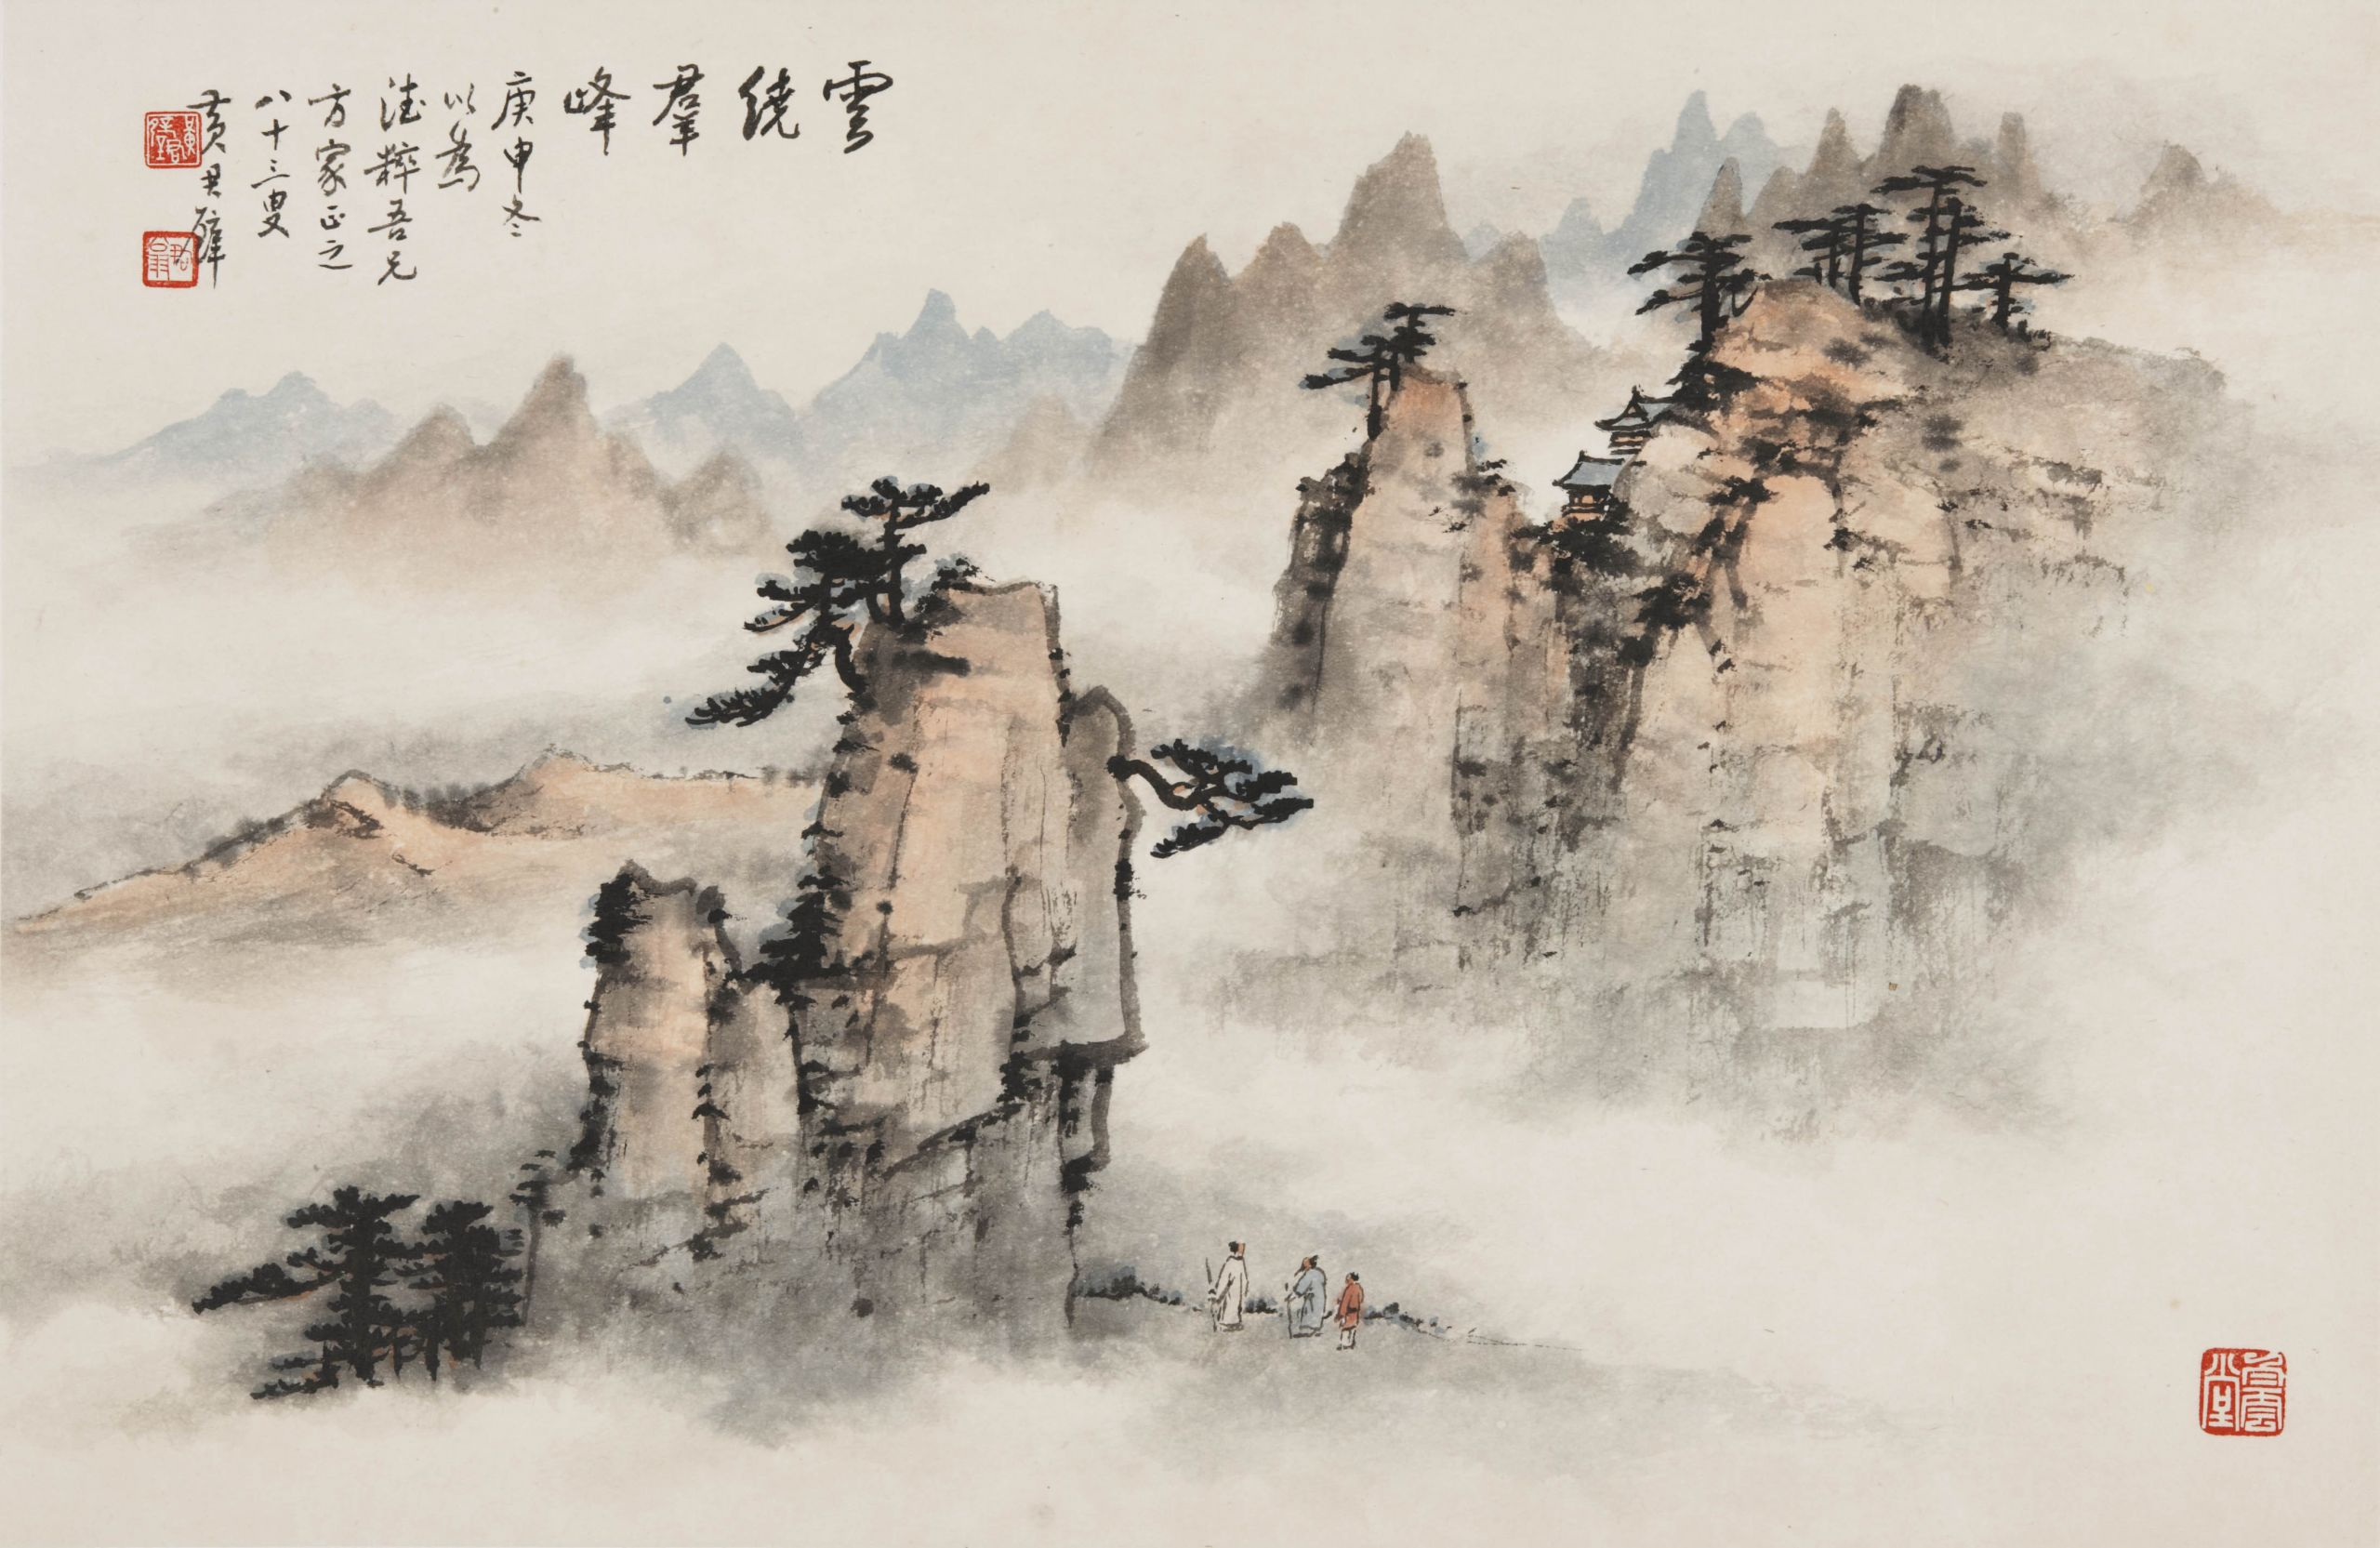 Chinese Landscape Paintings  Calendar of Events Amelia Kit Yiu Chau Lecture